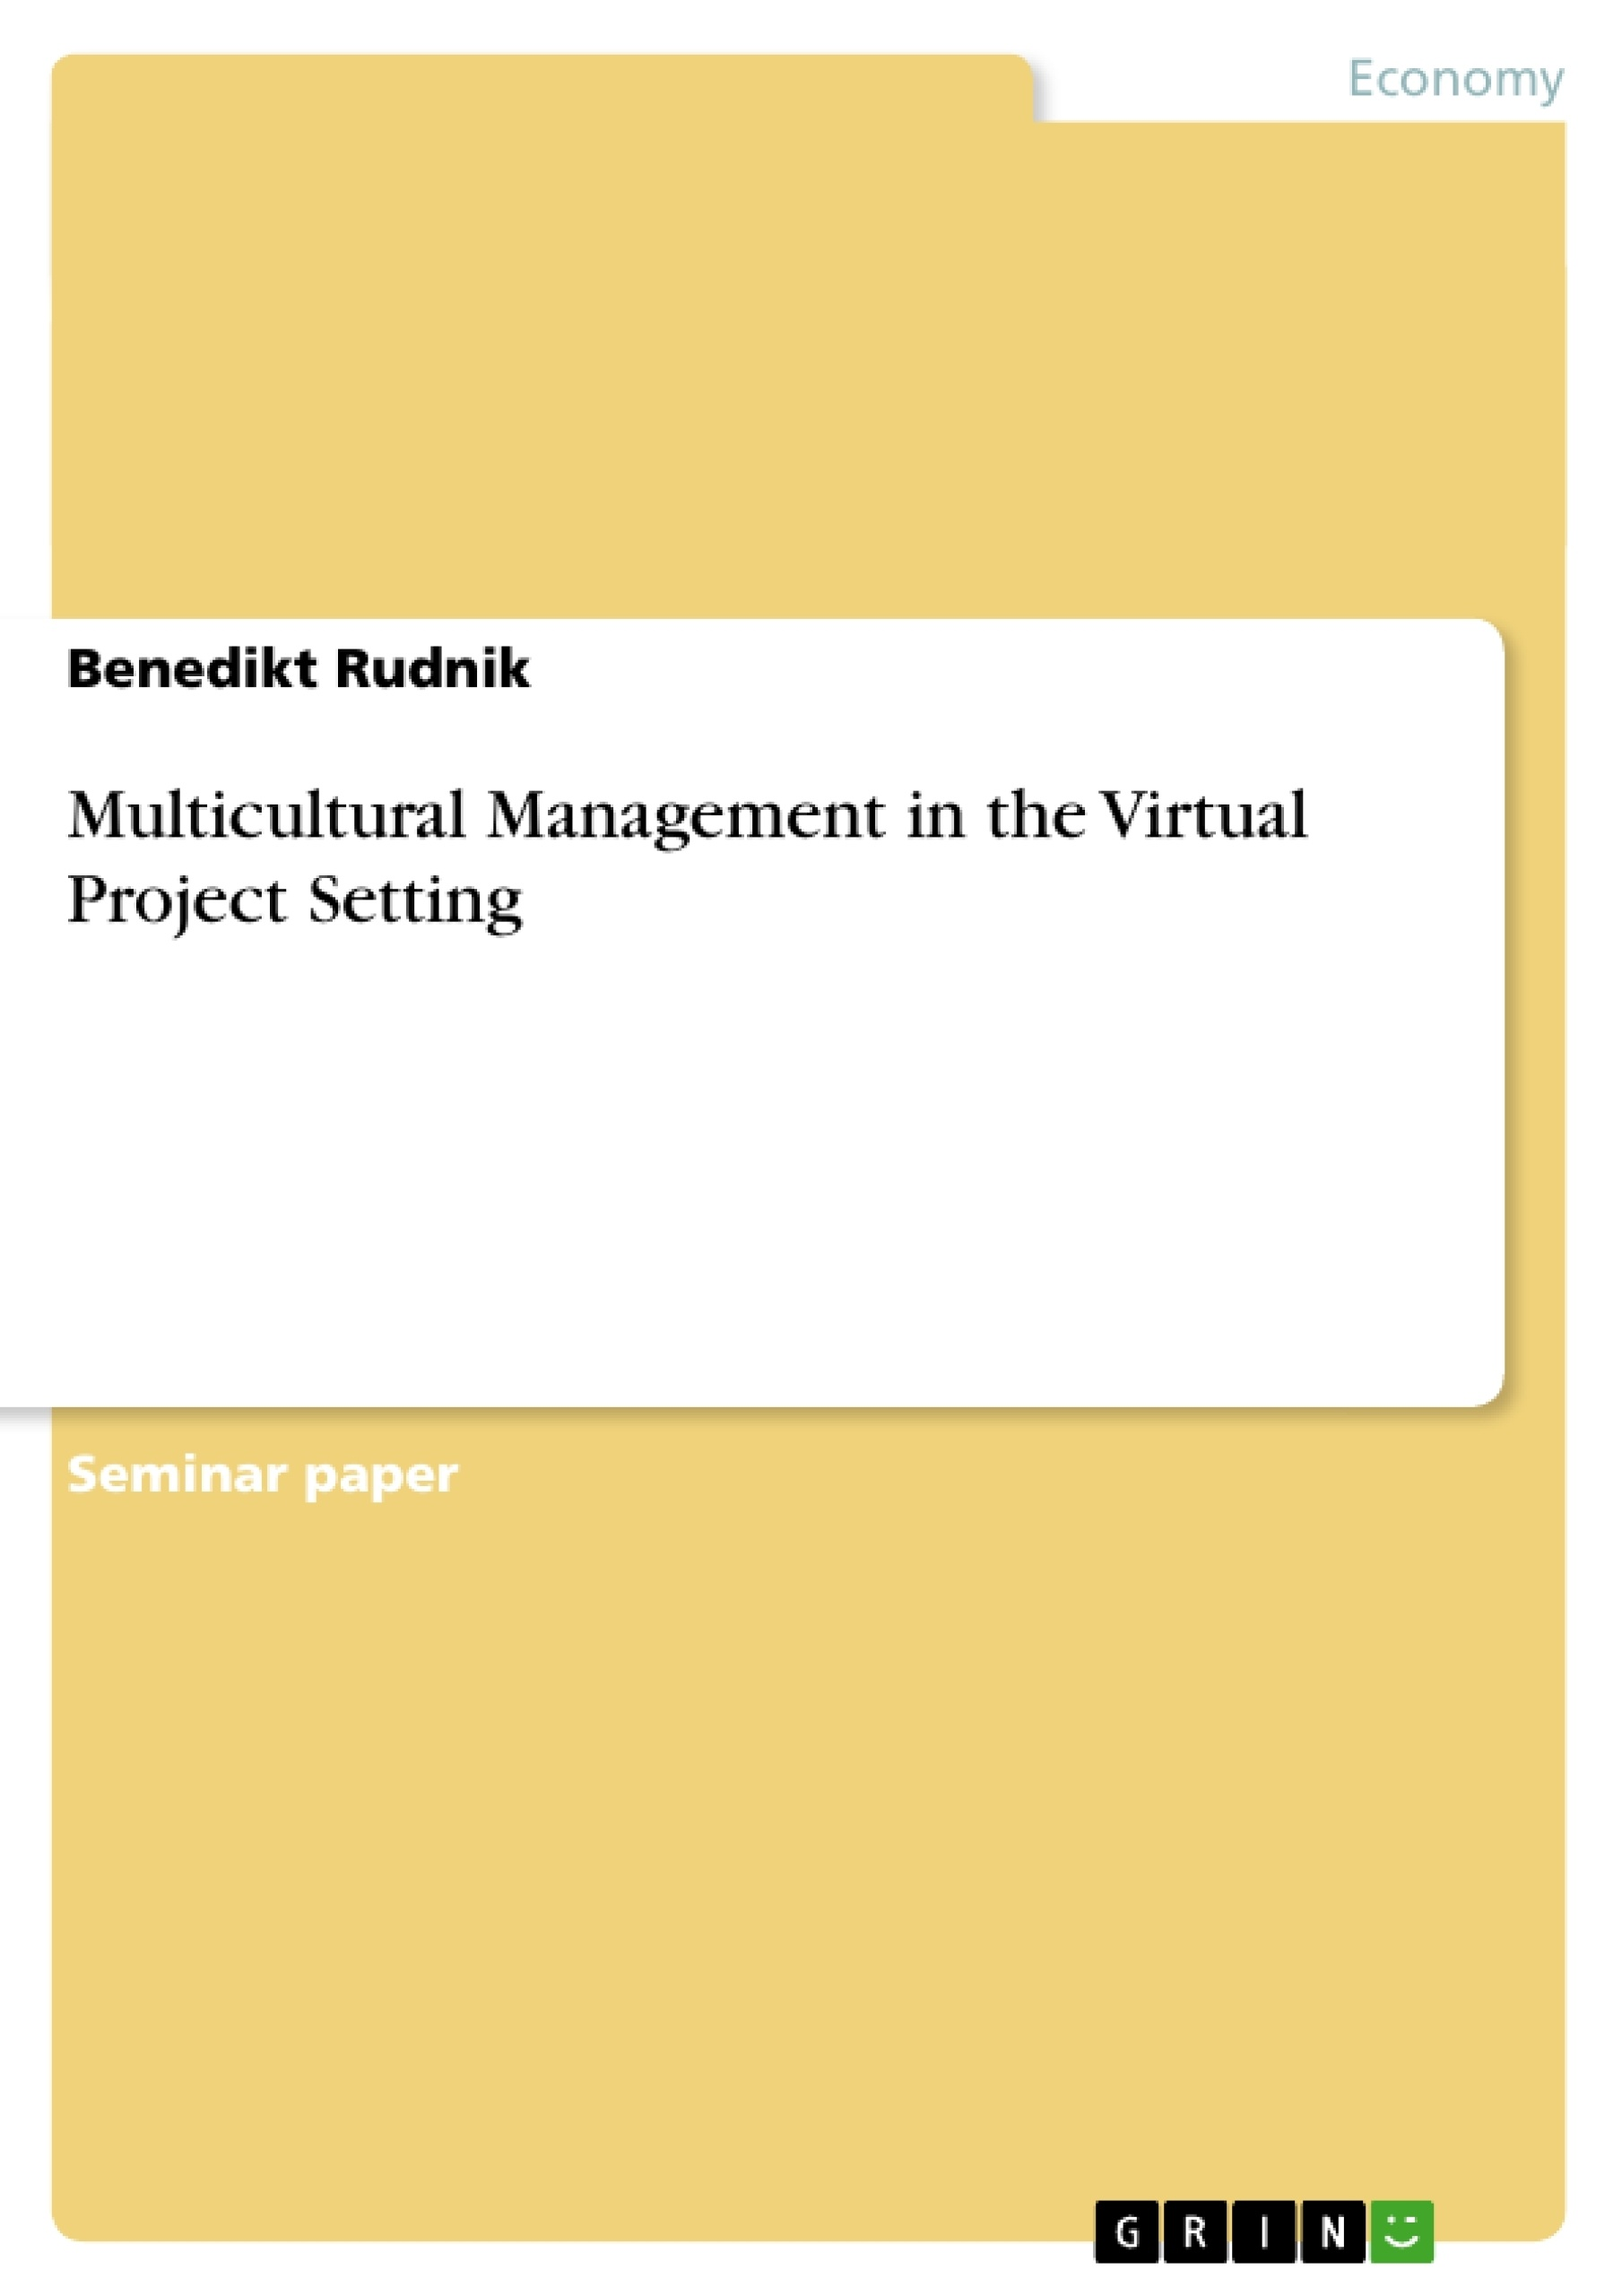 Title: Multicultural Management in the Virtual Project Setting